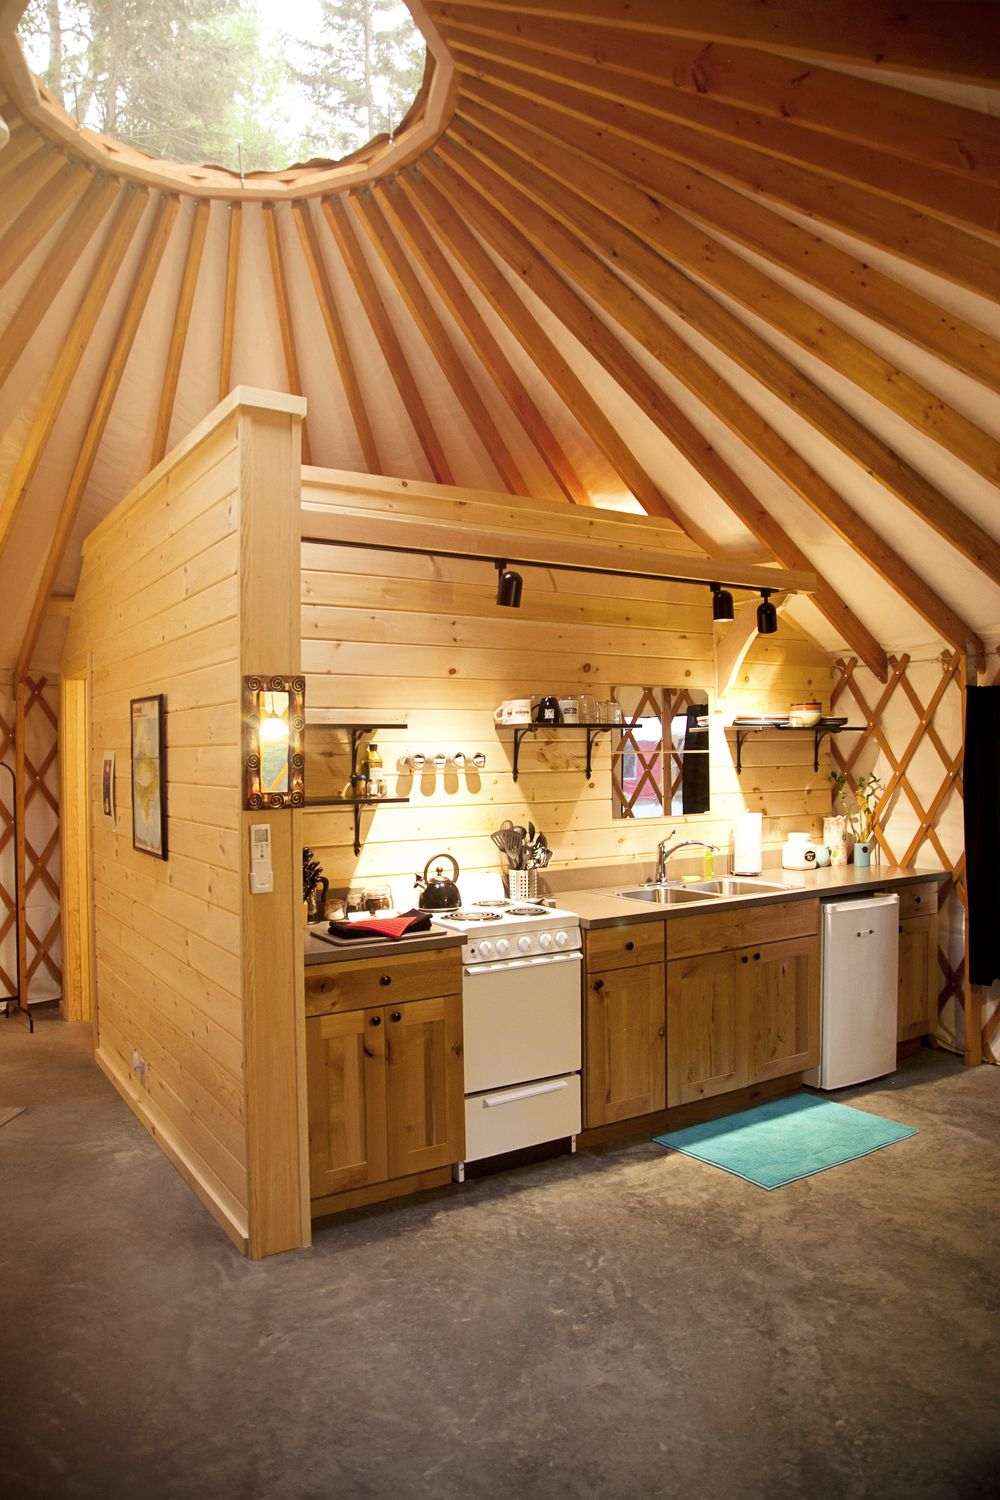 The Yurts Yurt Home Yurt Living Yurt Interior 1,108 yurt homes products are offered for sale by suppliers on alibaba.com, of which tents accounts for 2%, prefab houses accounts for 1%, and trade show tent accounts for 1%. the yurts yurt home yurt living